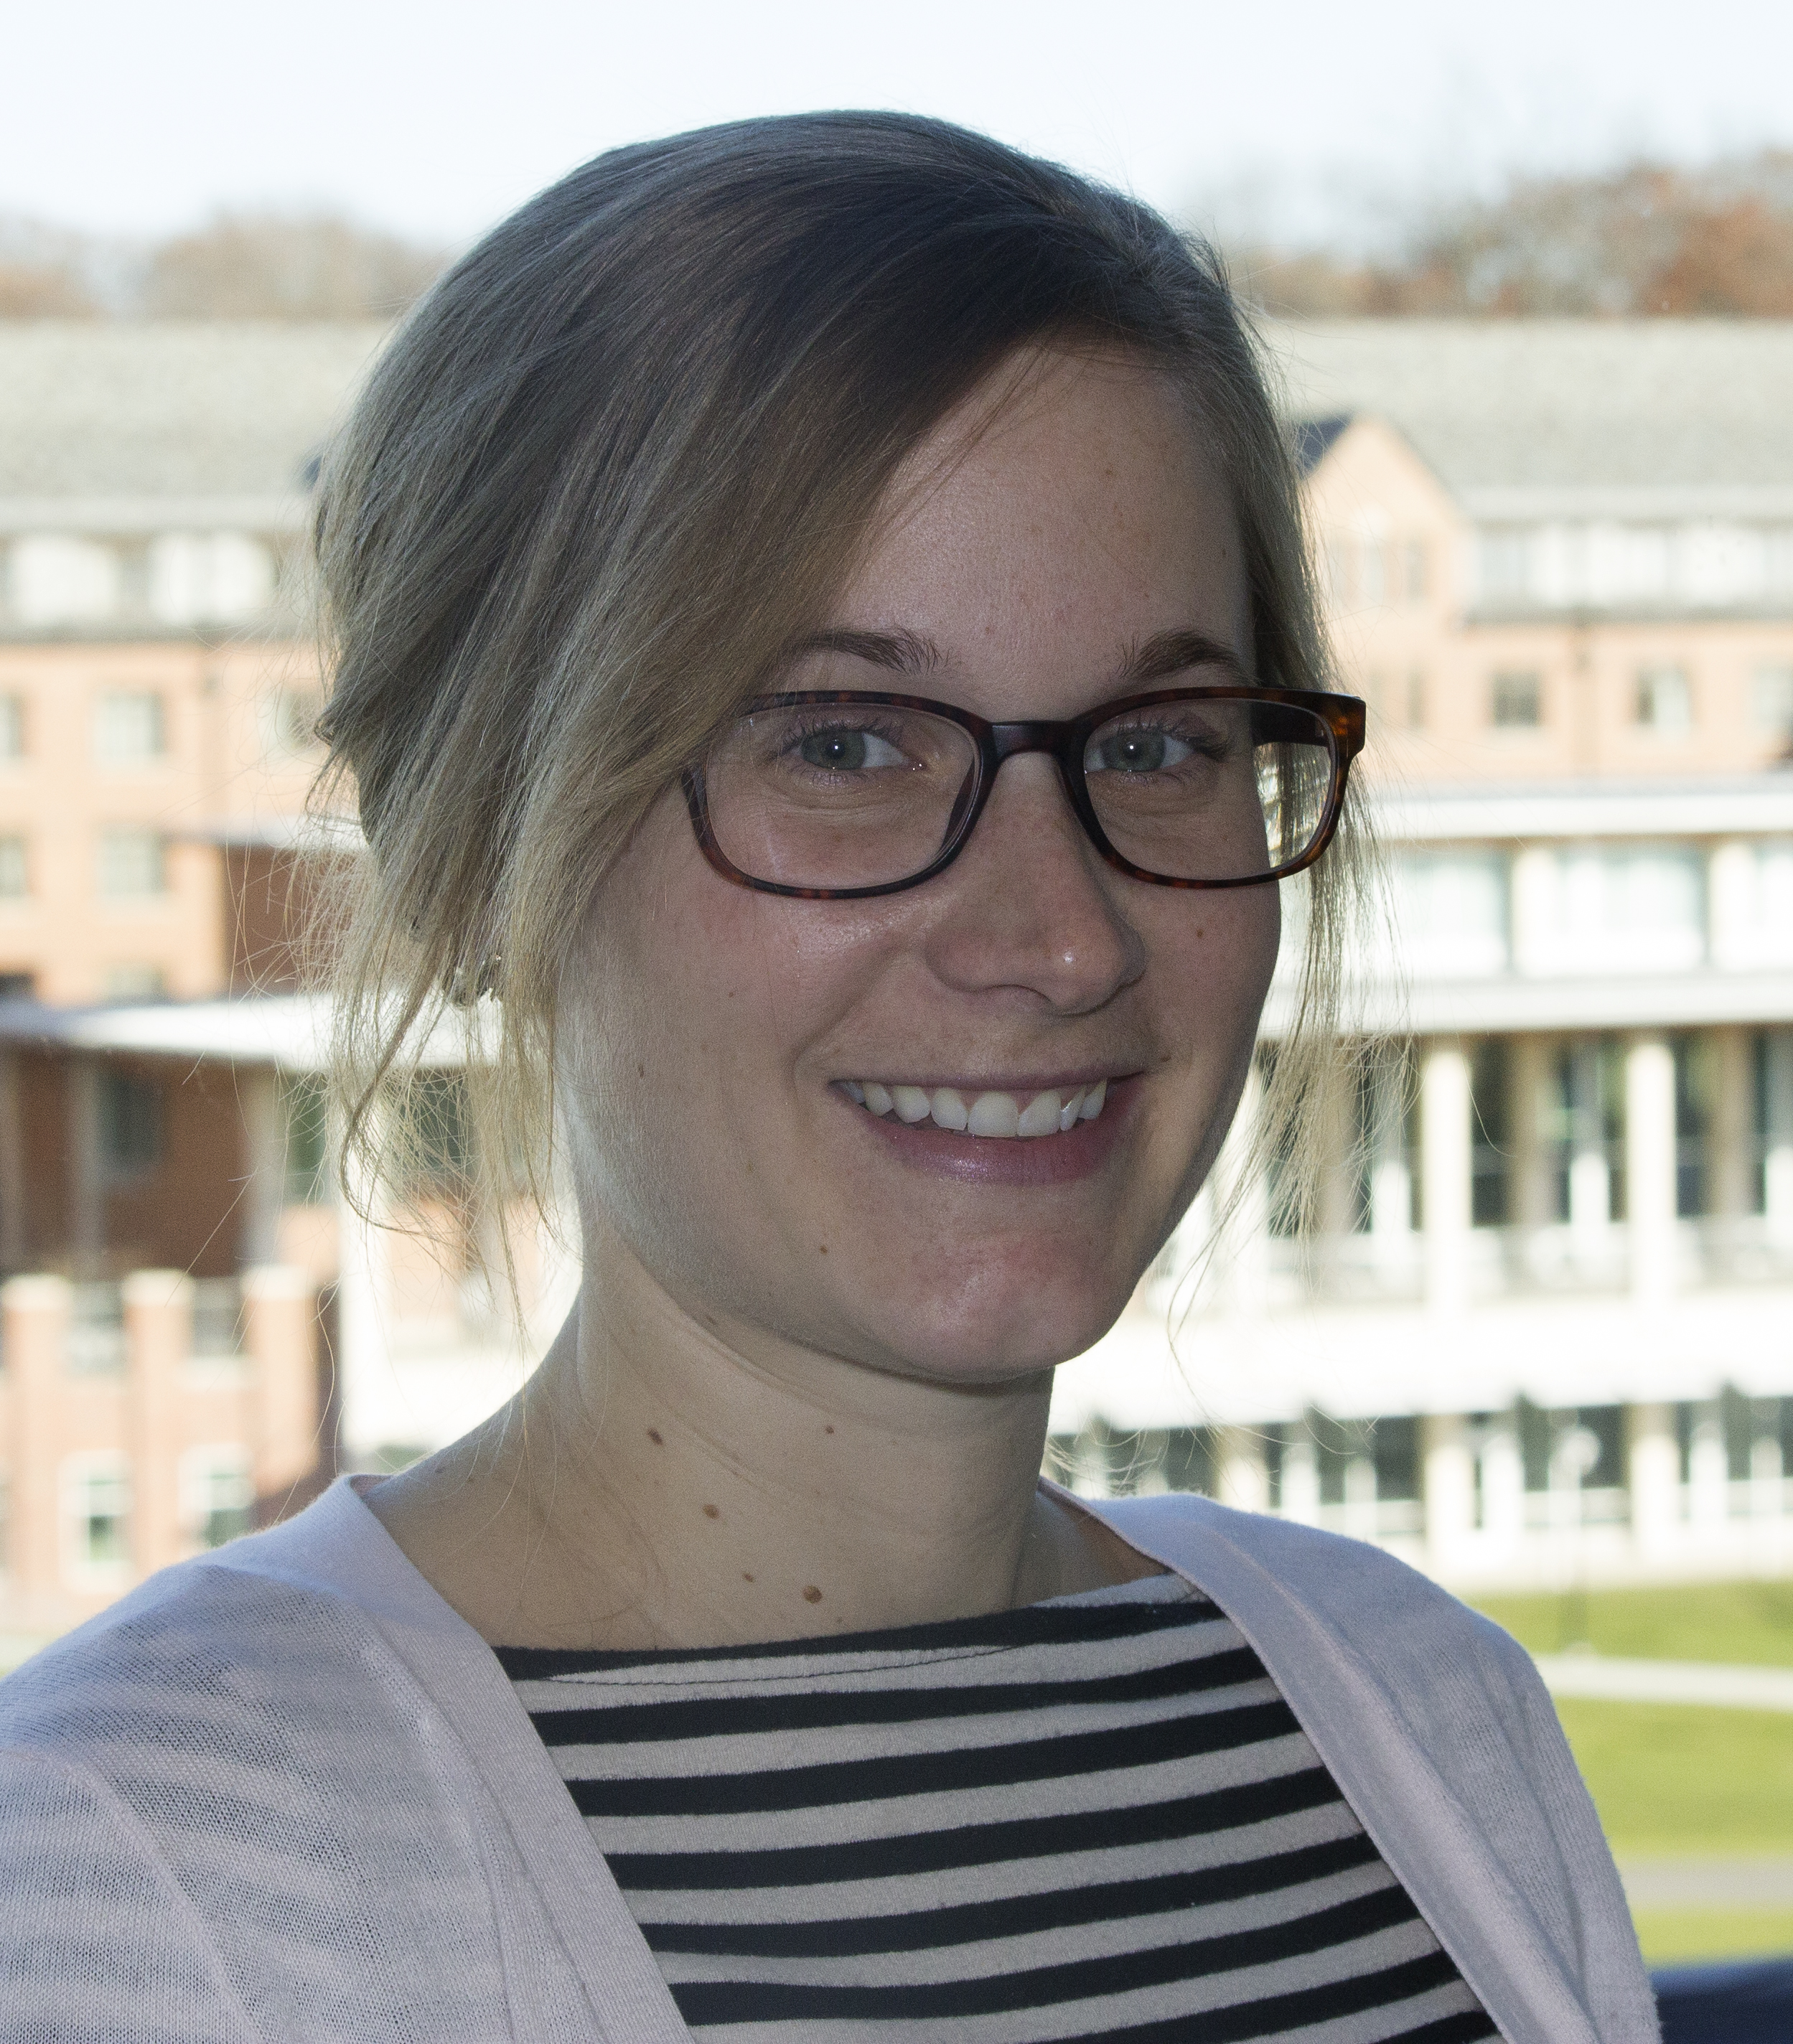 Olivia Anderson : Clinical Assistant Professor, Nutritional Sciences Department, School of Public Health